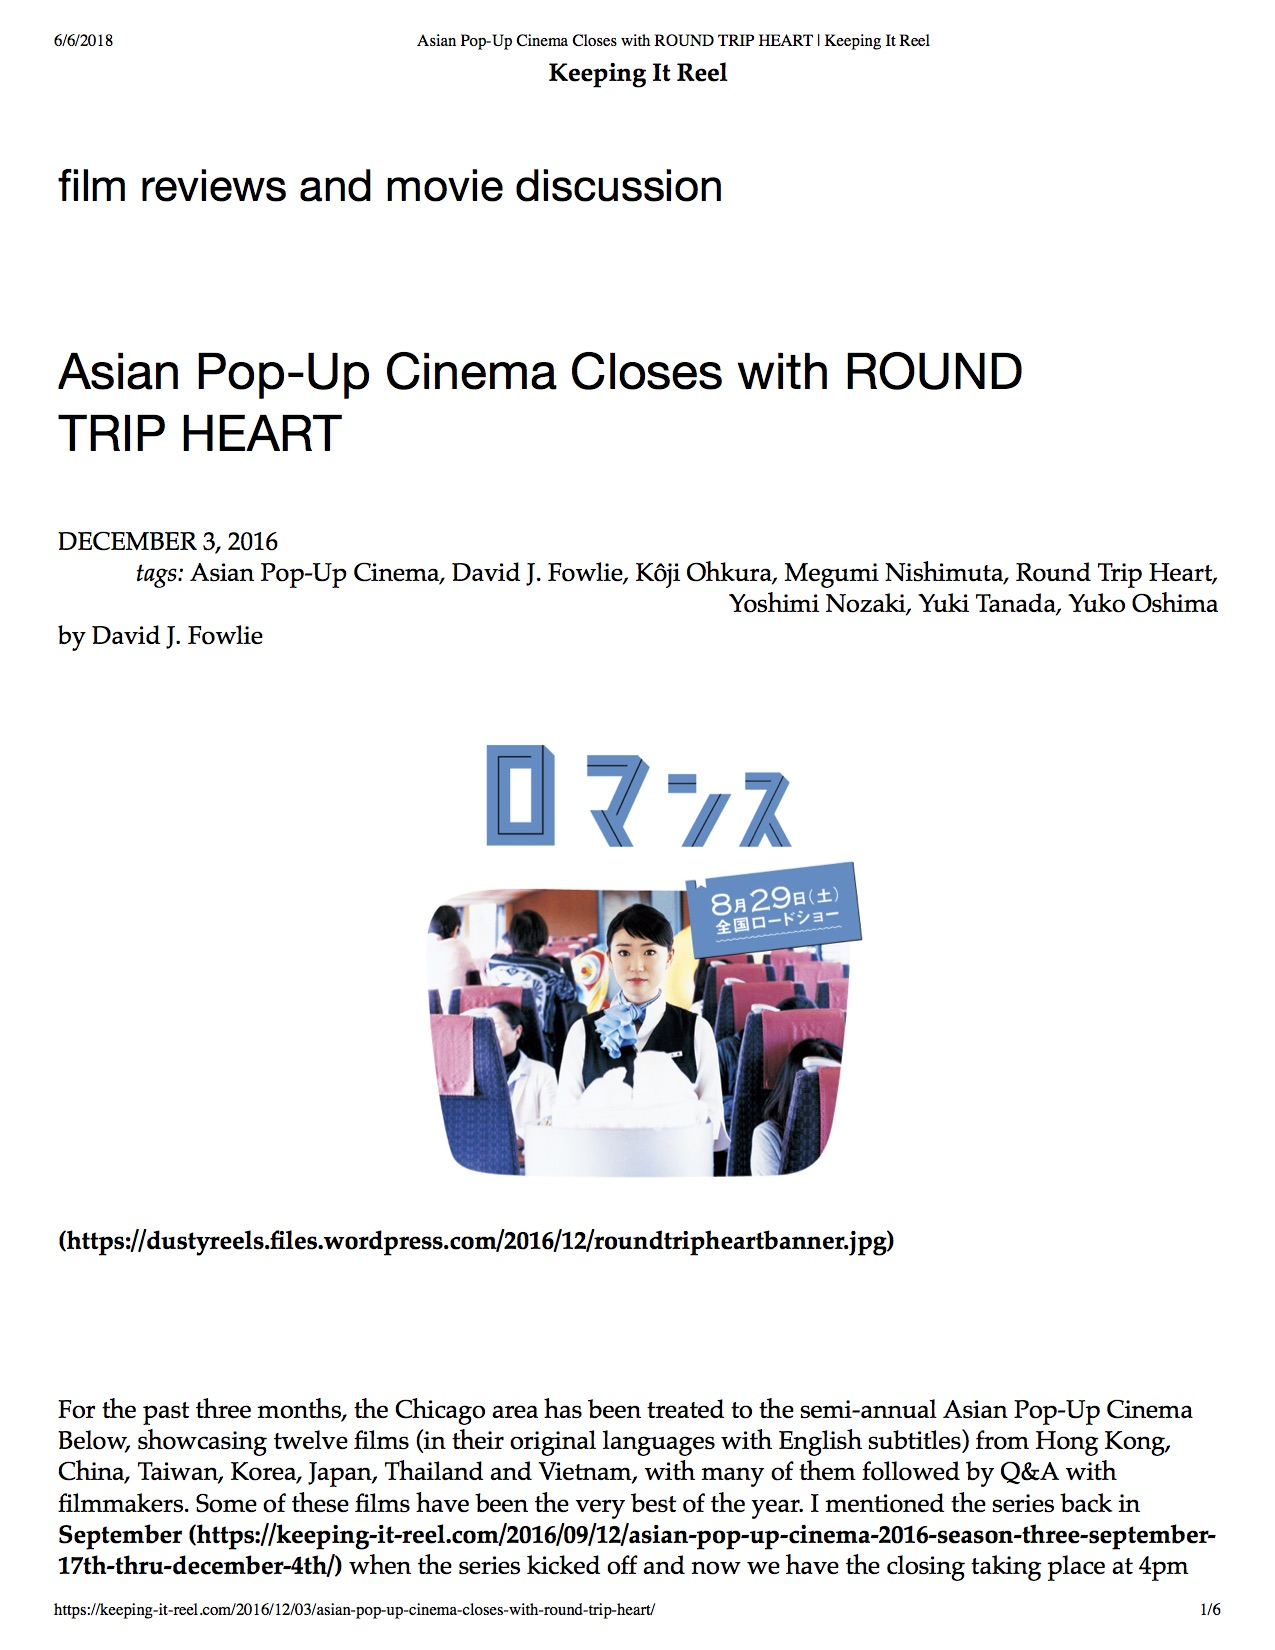 1Asian Pop-Up Cinema Closes with ROUND TRIP HEART _ Keeping It Reel.jpg